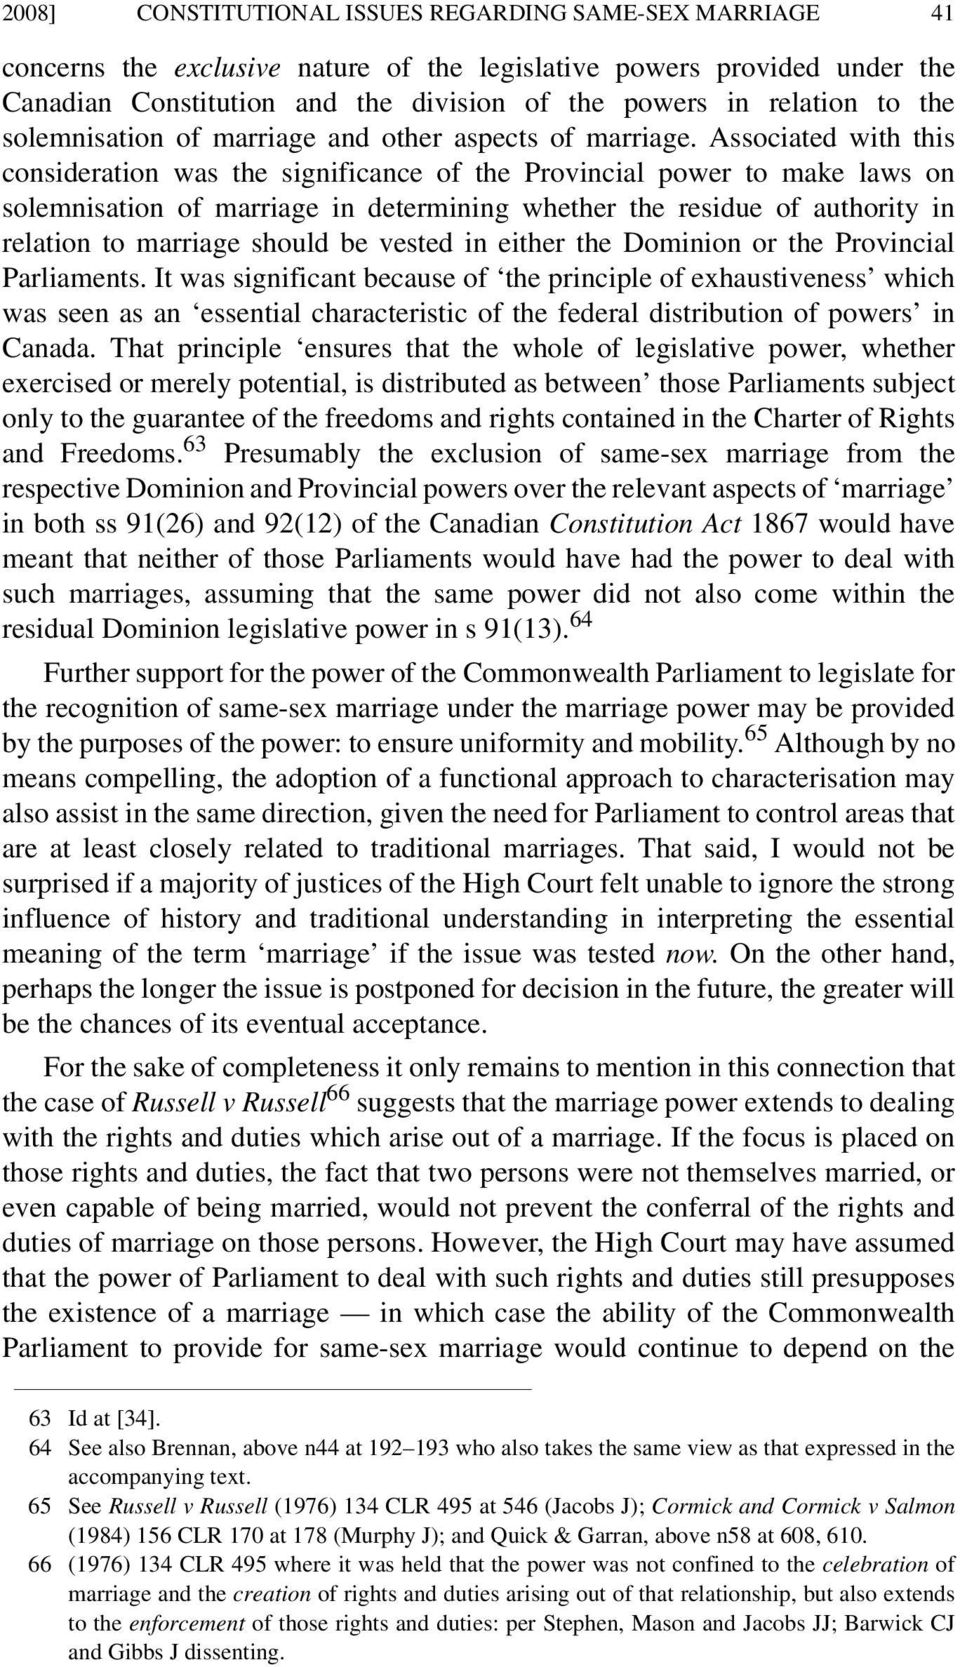 Associated with this consideration was the significance of the Provincial power to make laws on solemnisation of marriage in determining whether the residue of authority in relation to marriage